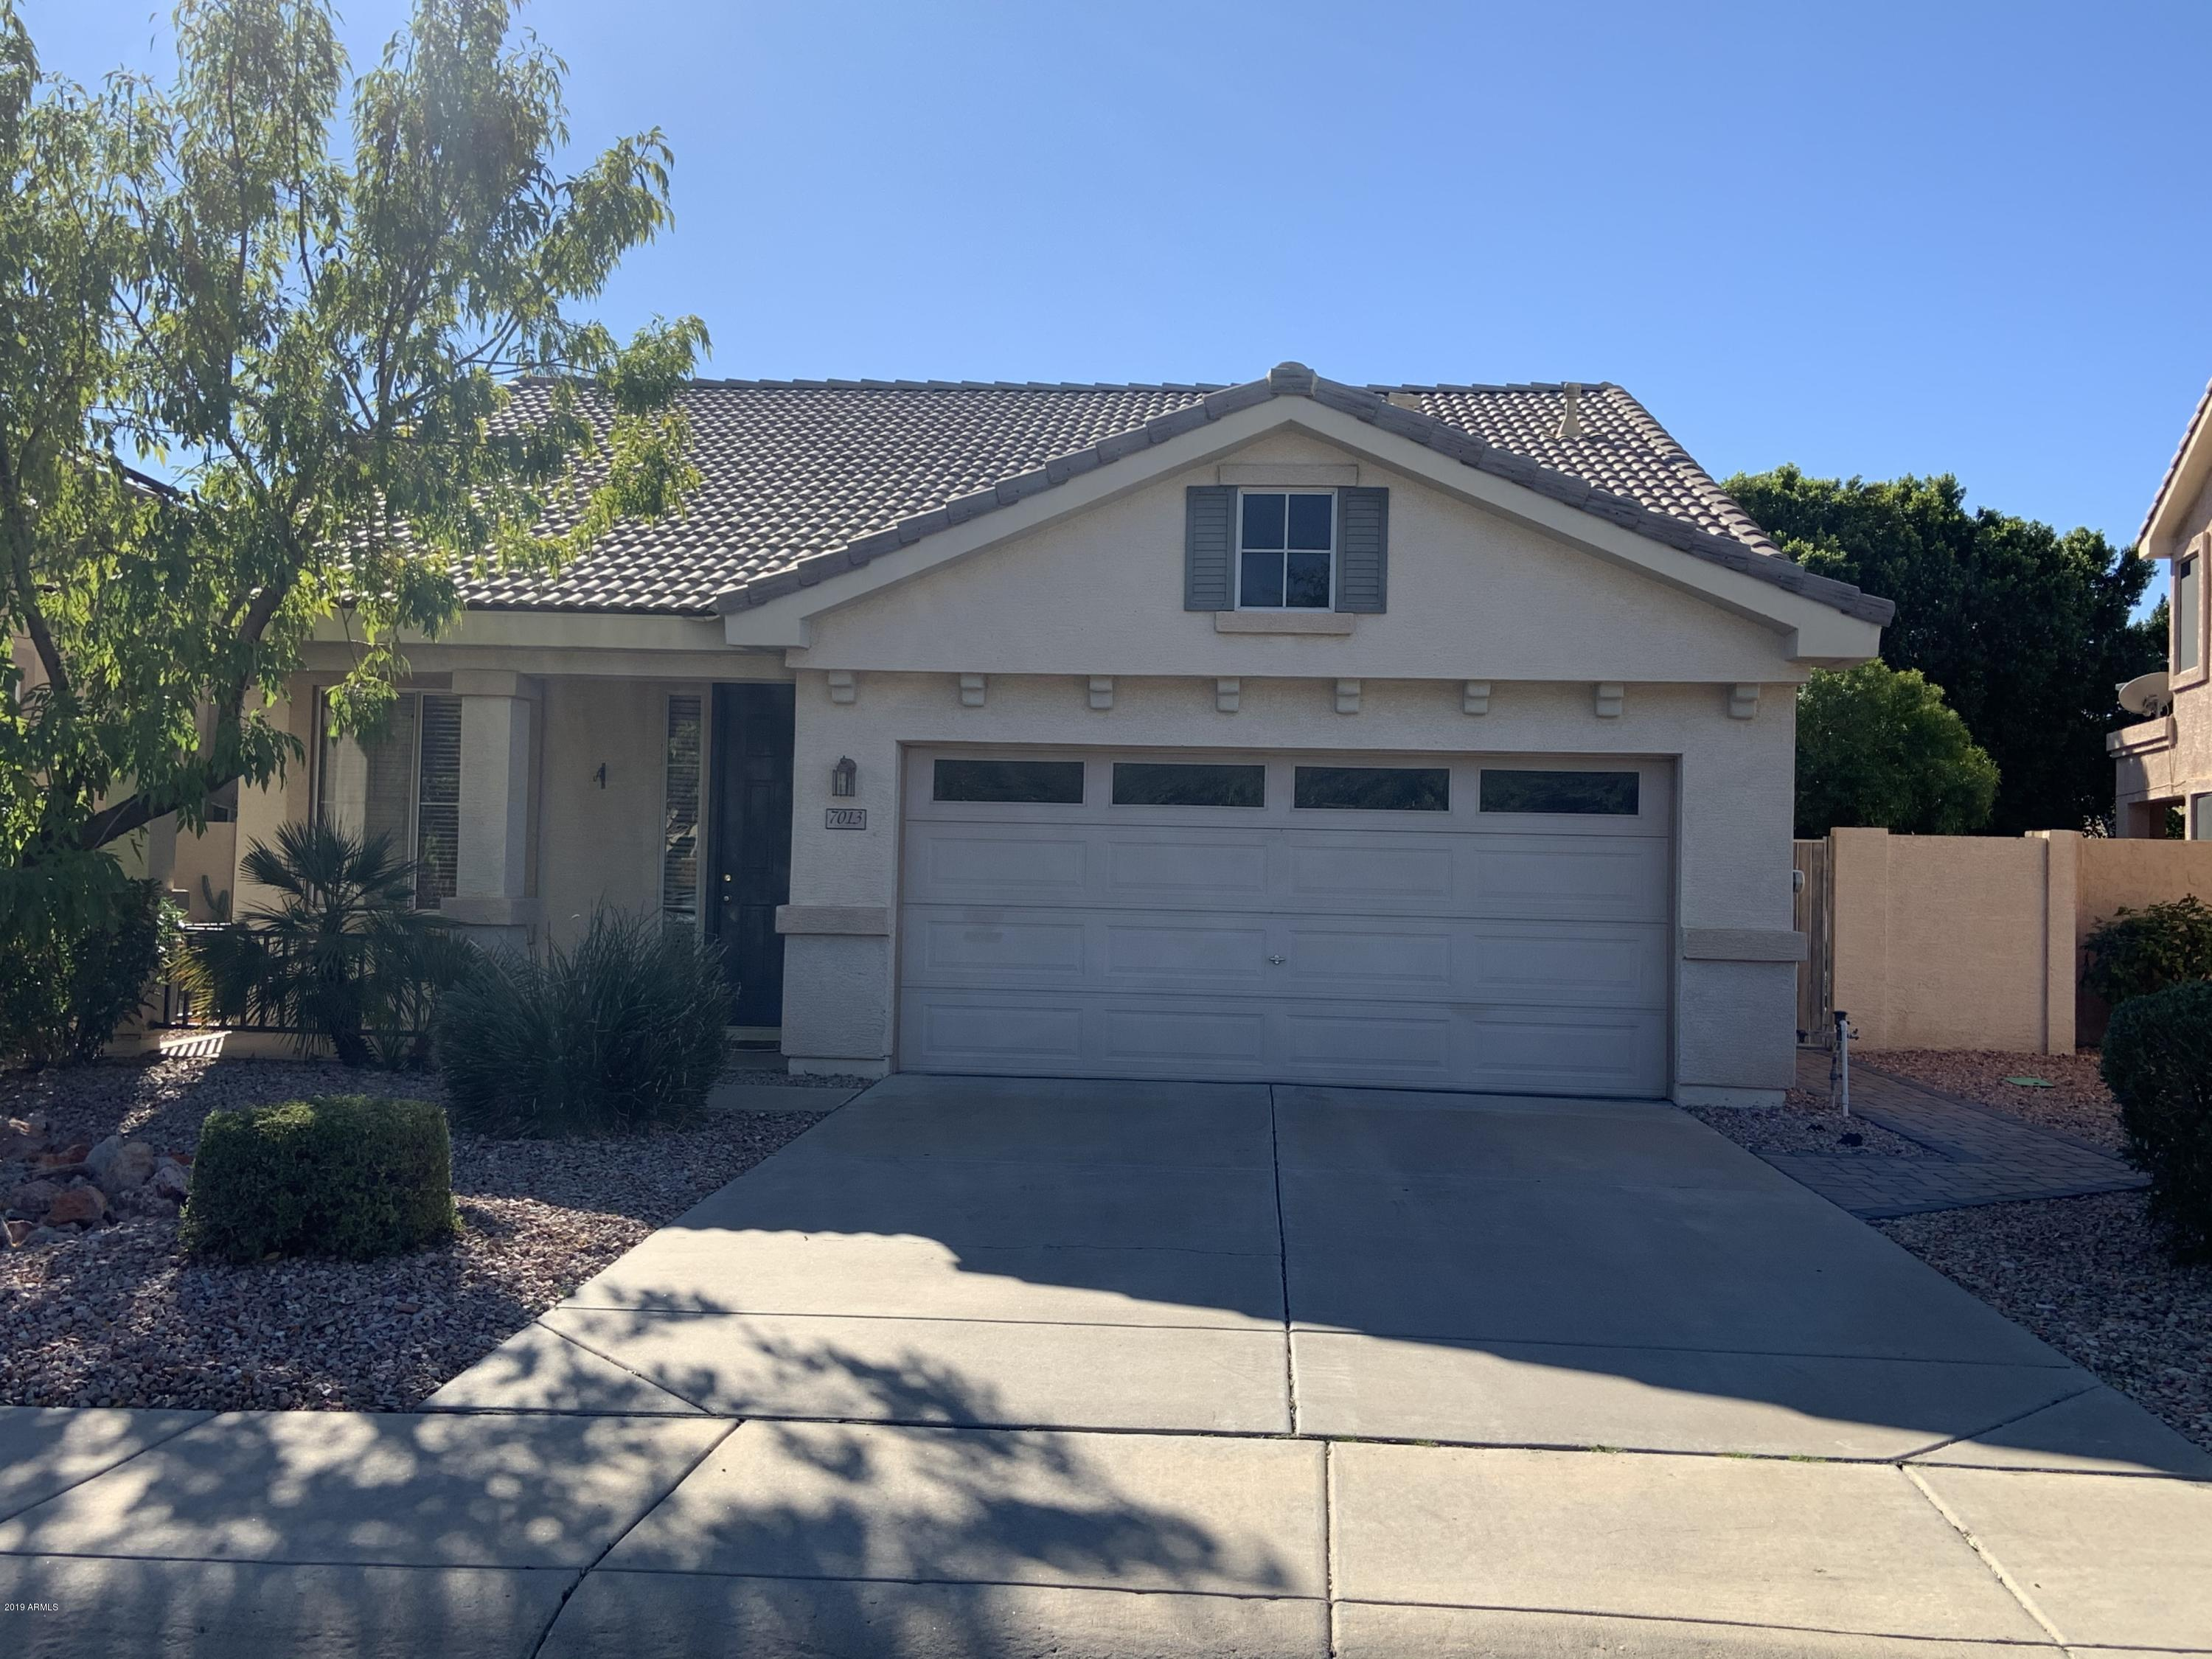 Photo of 7013 W TONOPAH Drive, Glendale, AZ 85308